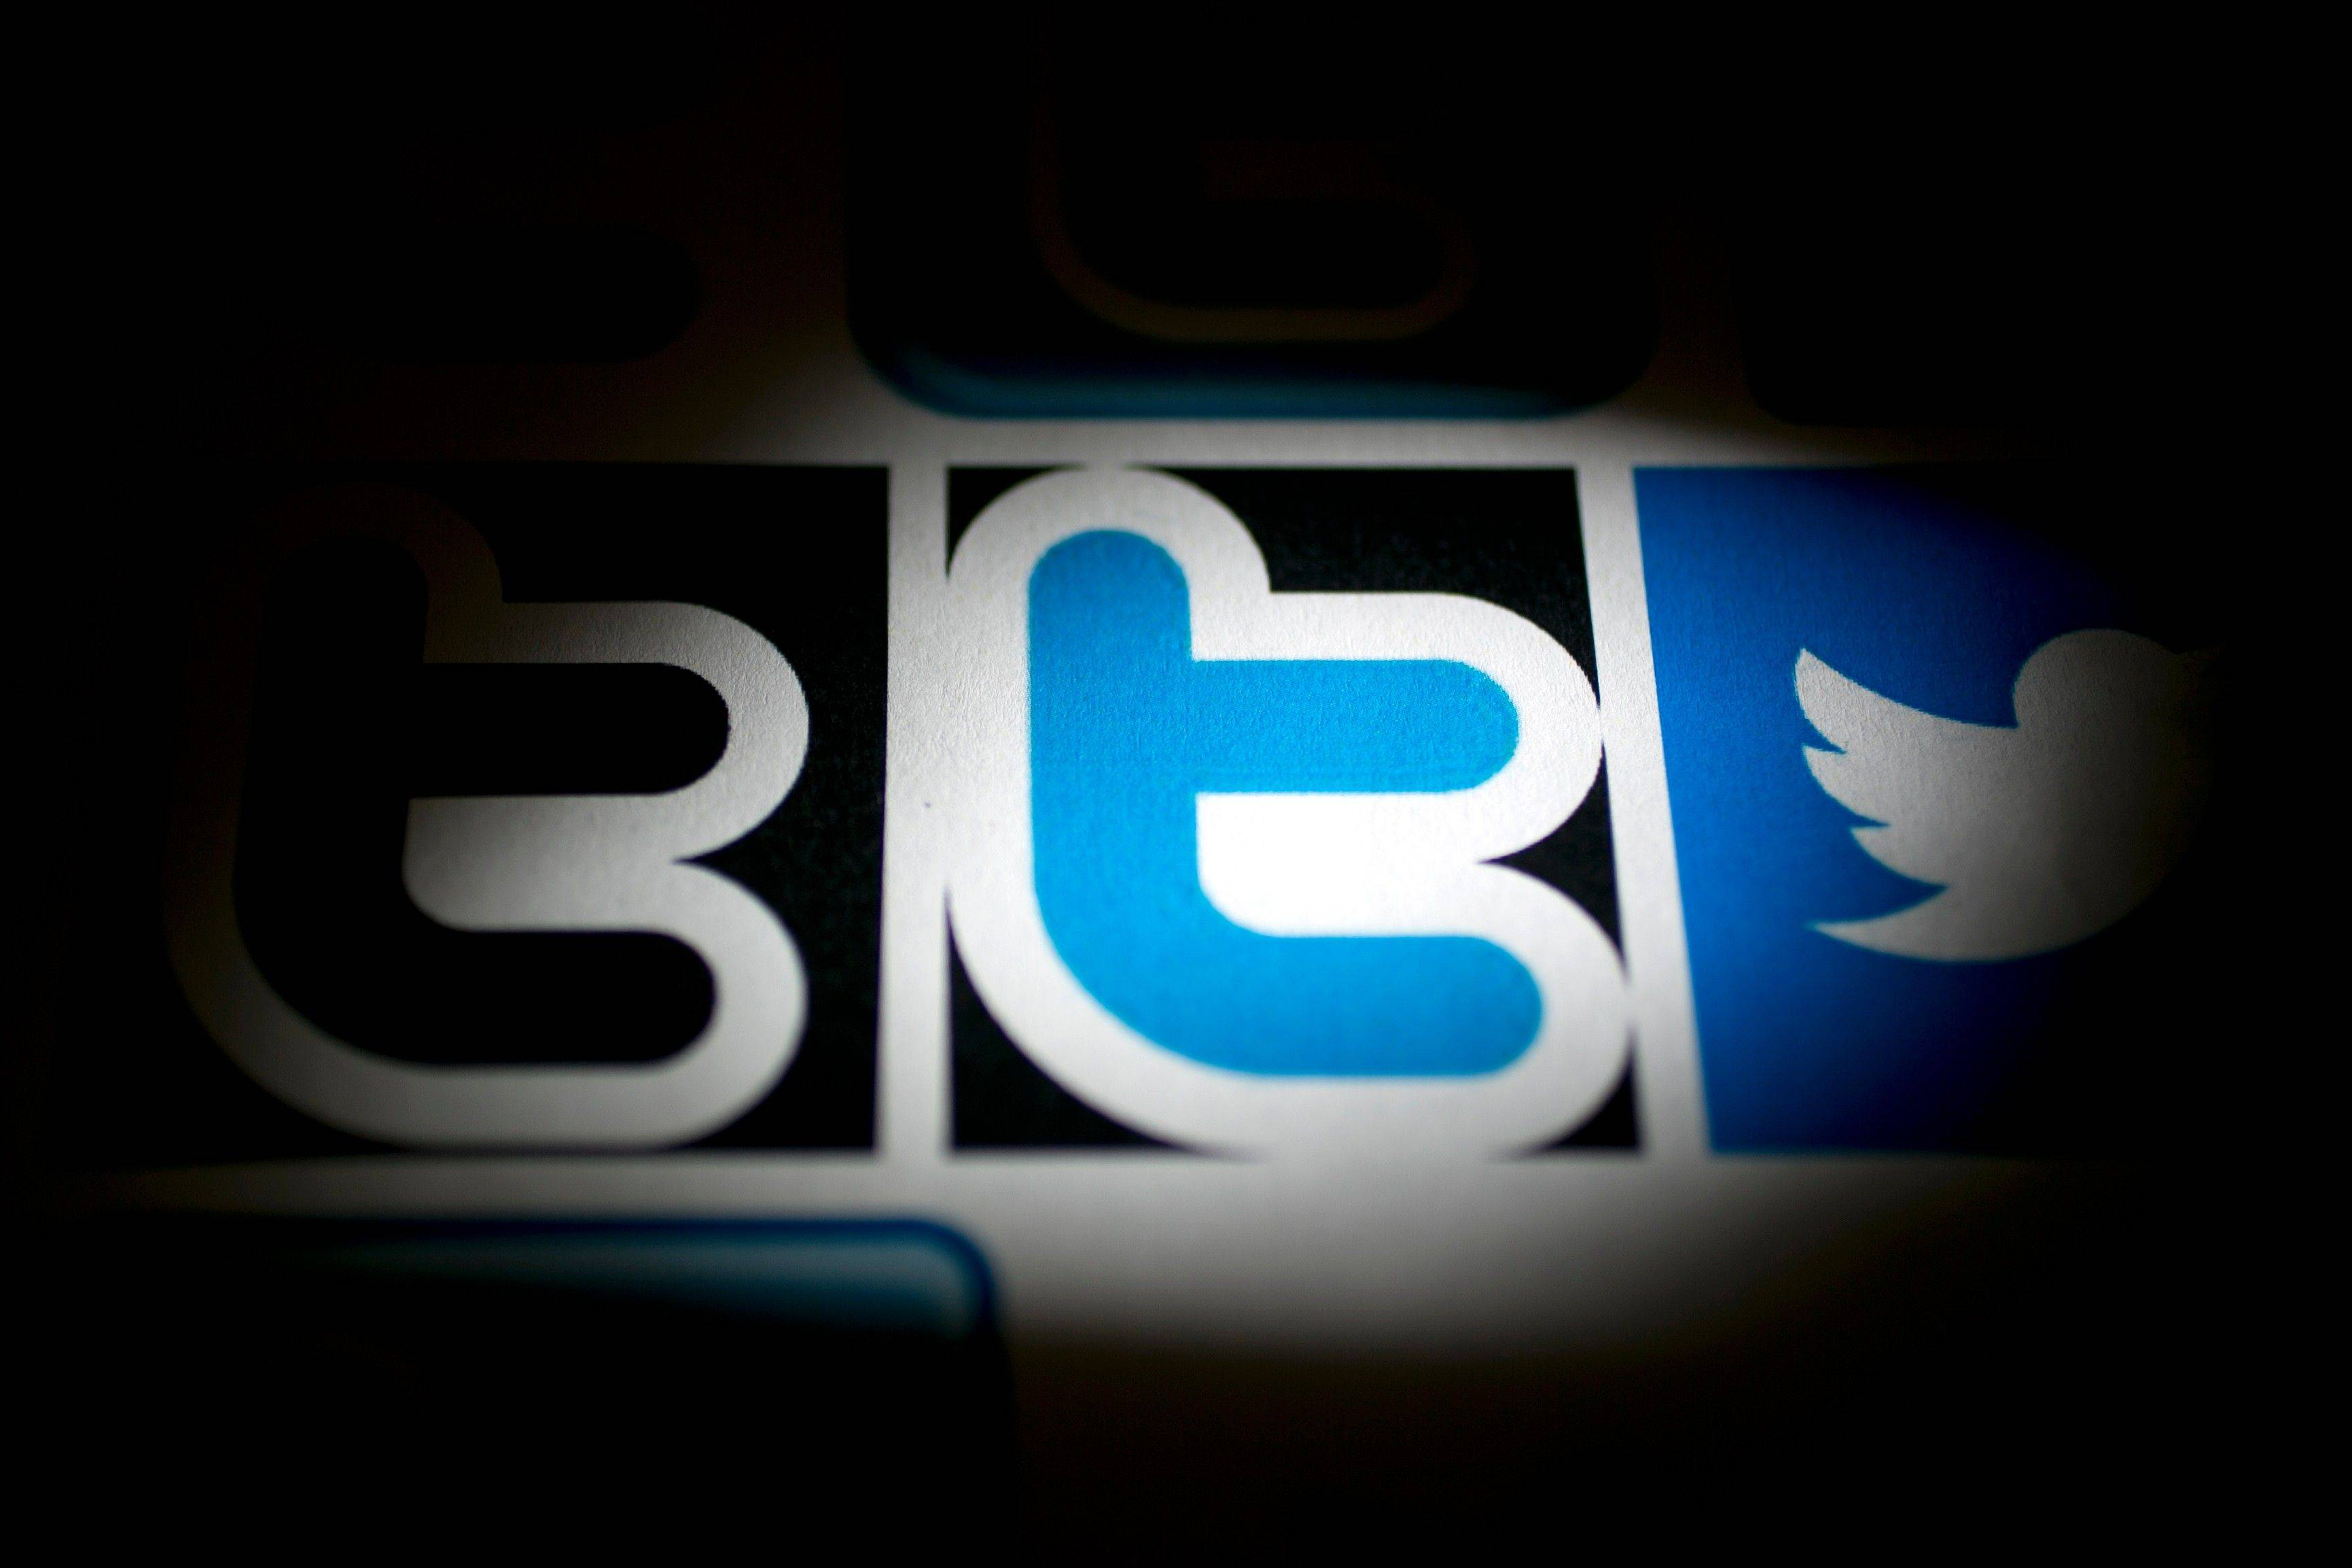 Twitter Inc.�s market debut will be the most anticipated initial public offering since Facebook Inc. listed last year, and the microblogging service is making sure to avoid some of its rival�s pitfalls.